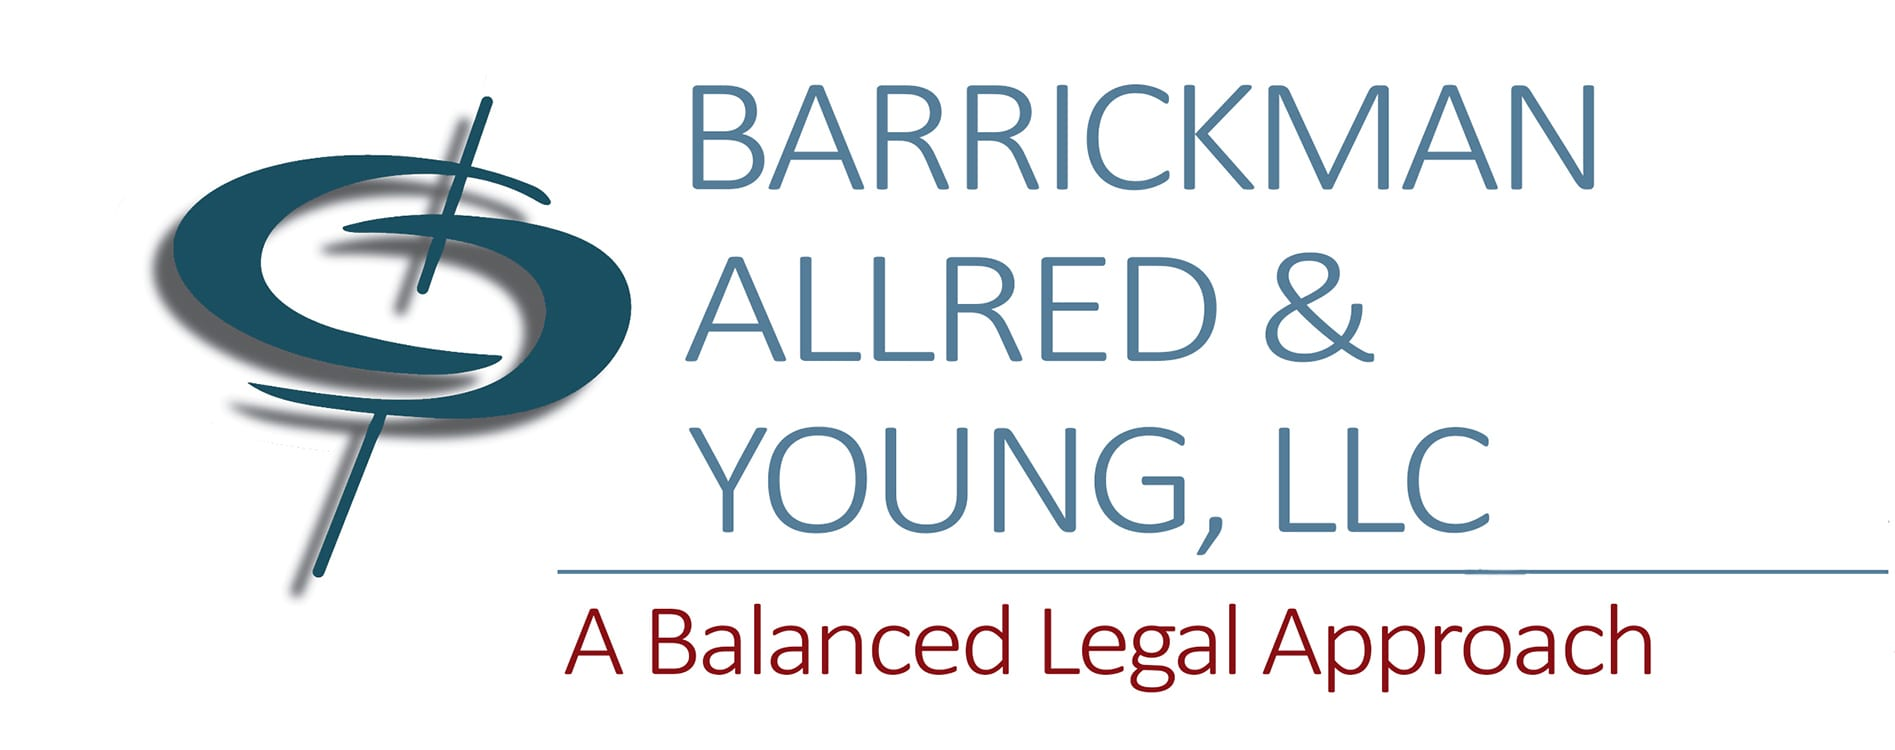 Barrickman, Allred & Young, LLC